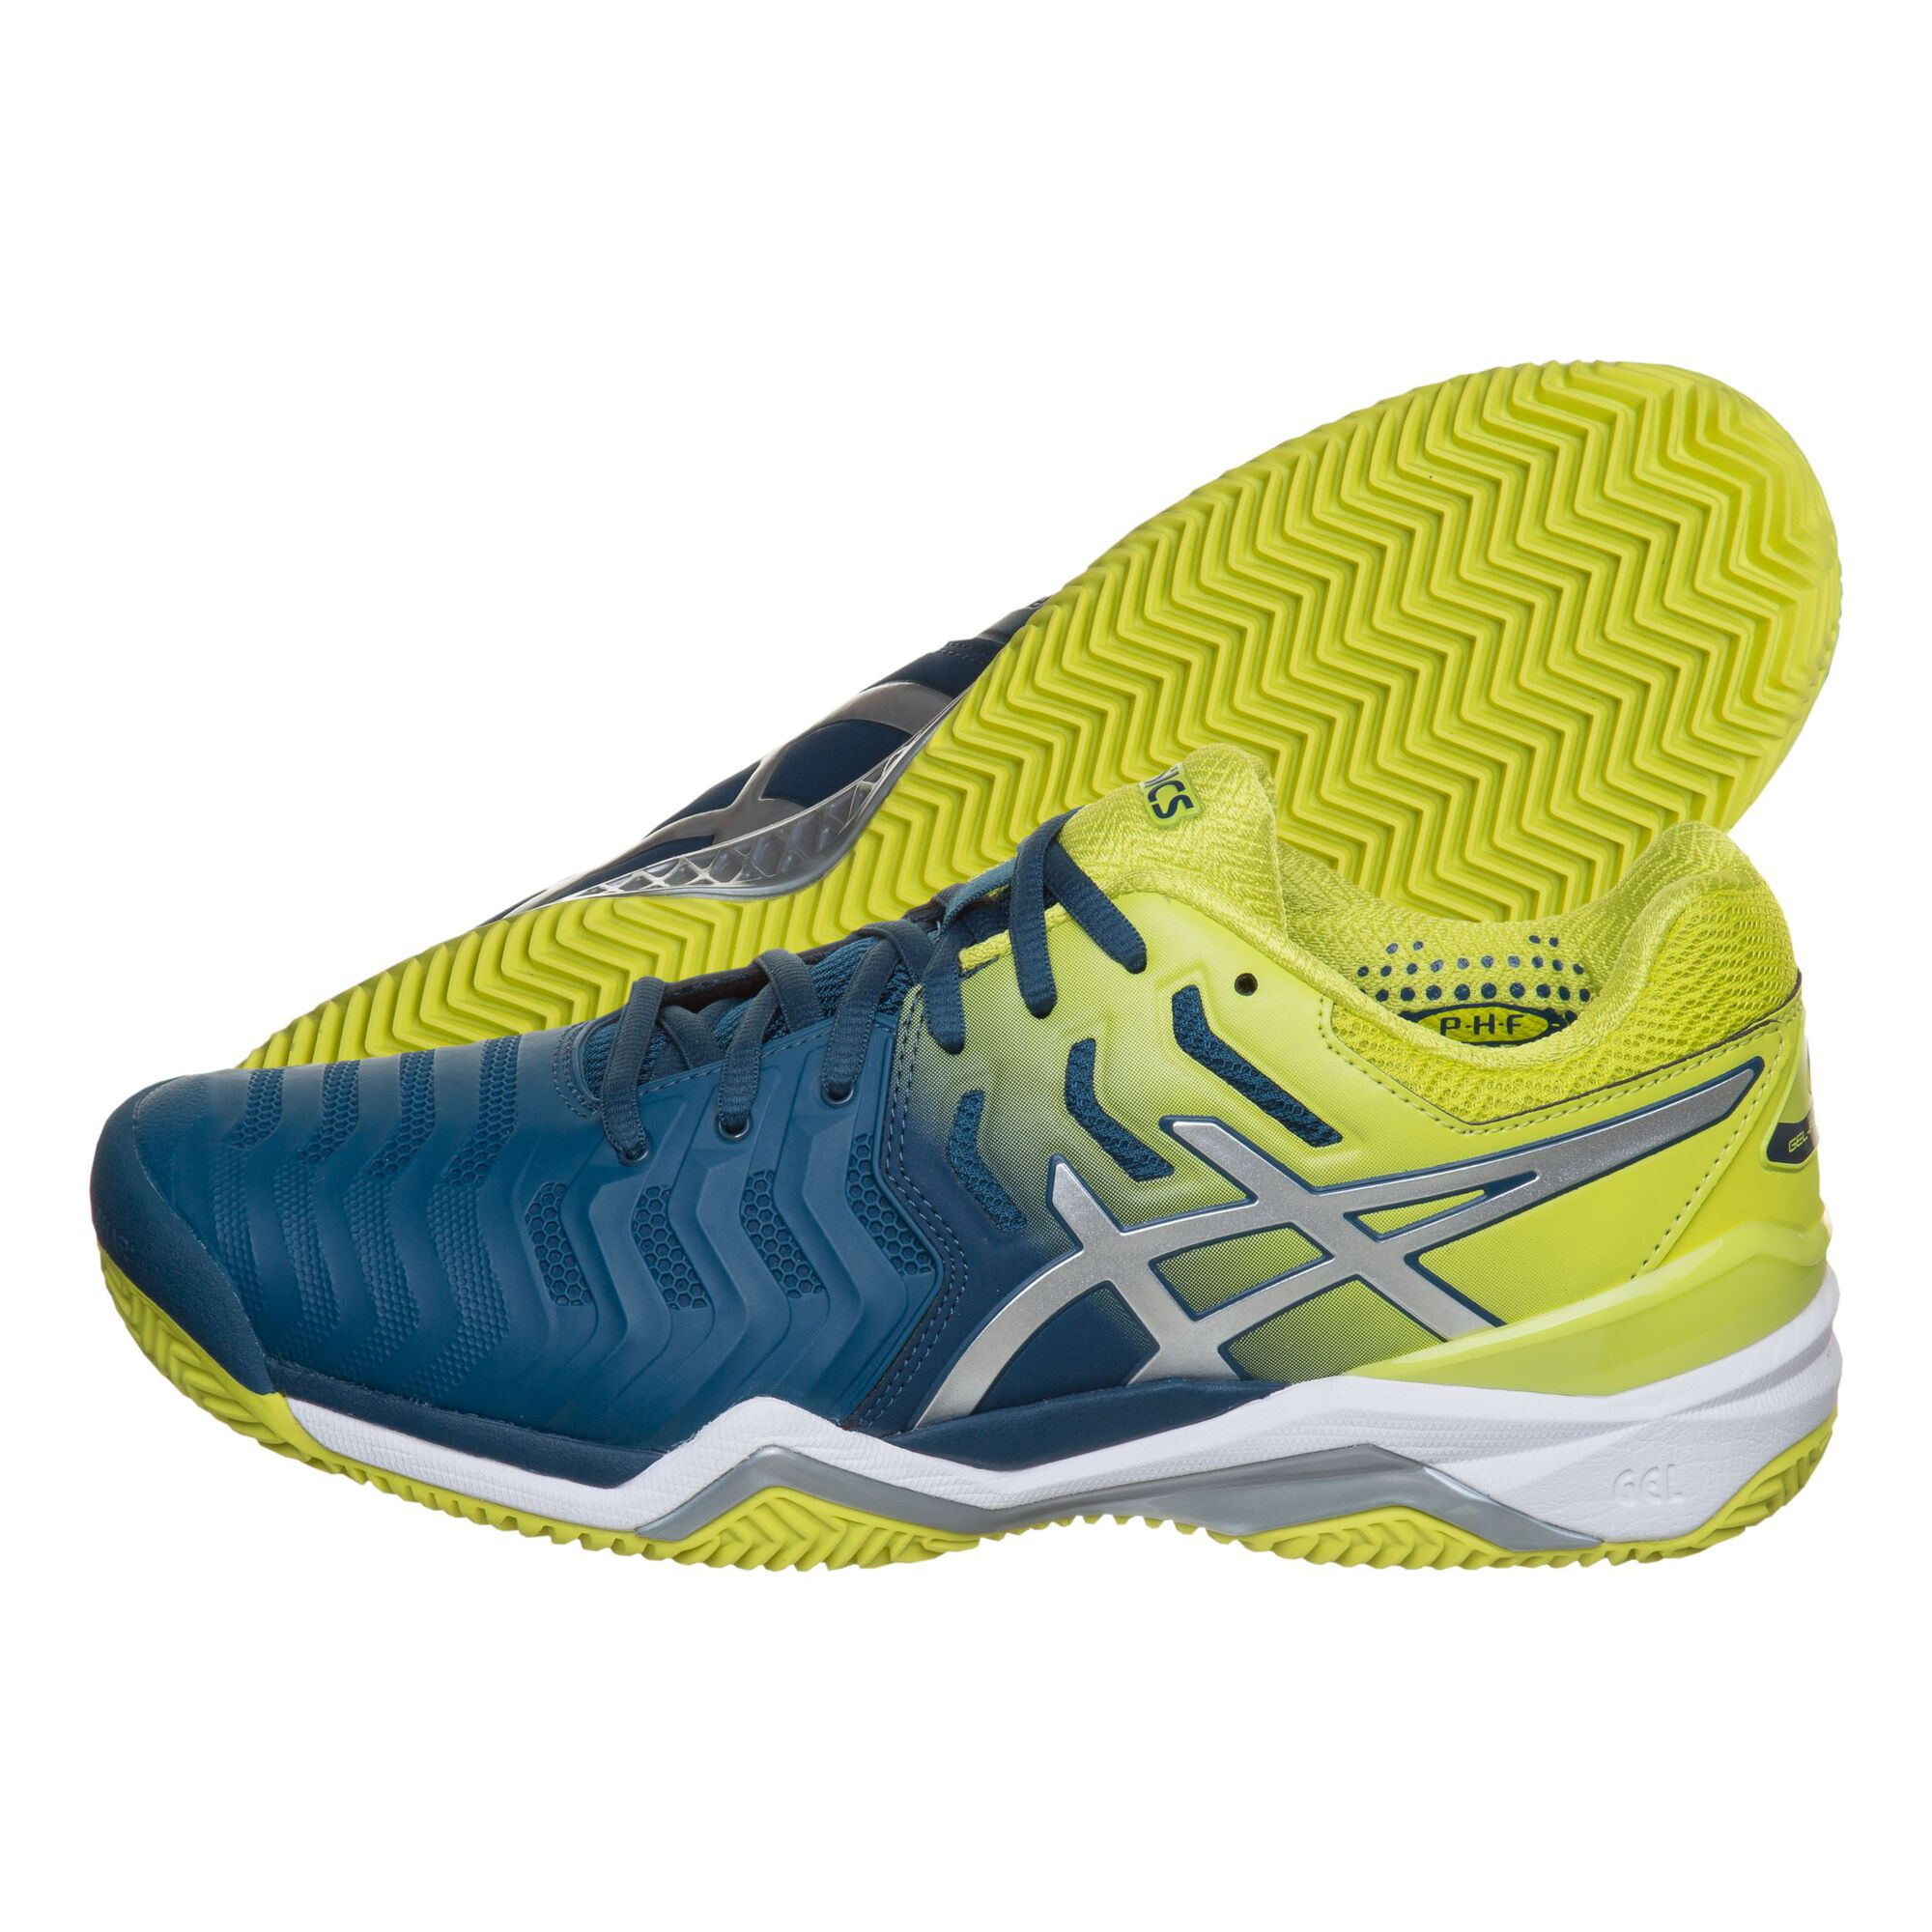 a9a8d8e36f7 ... Asics · Asics · Asics · Asics · Asics · Asics. Gel-Resolution 7 Clay ...